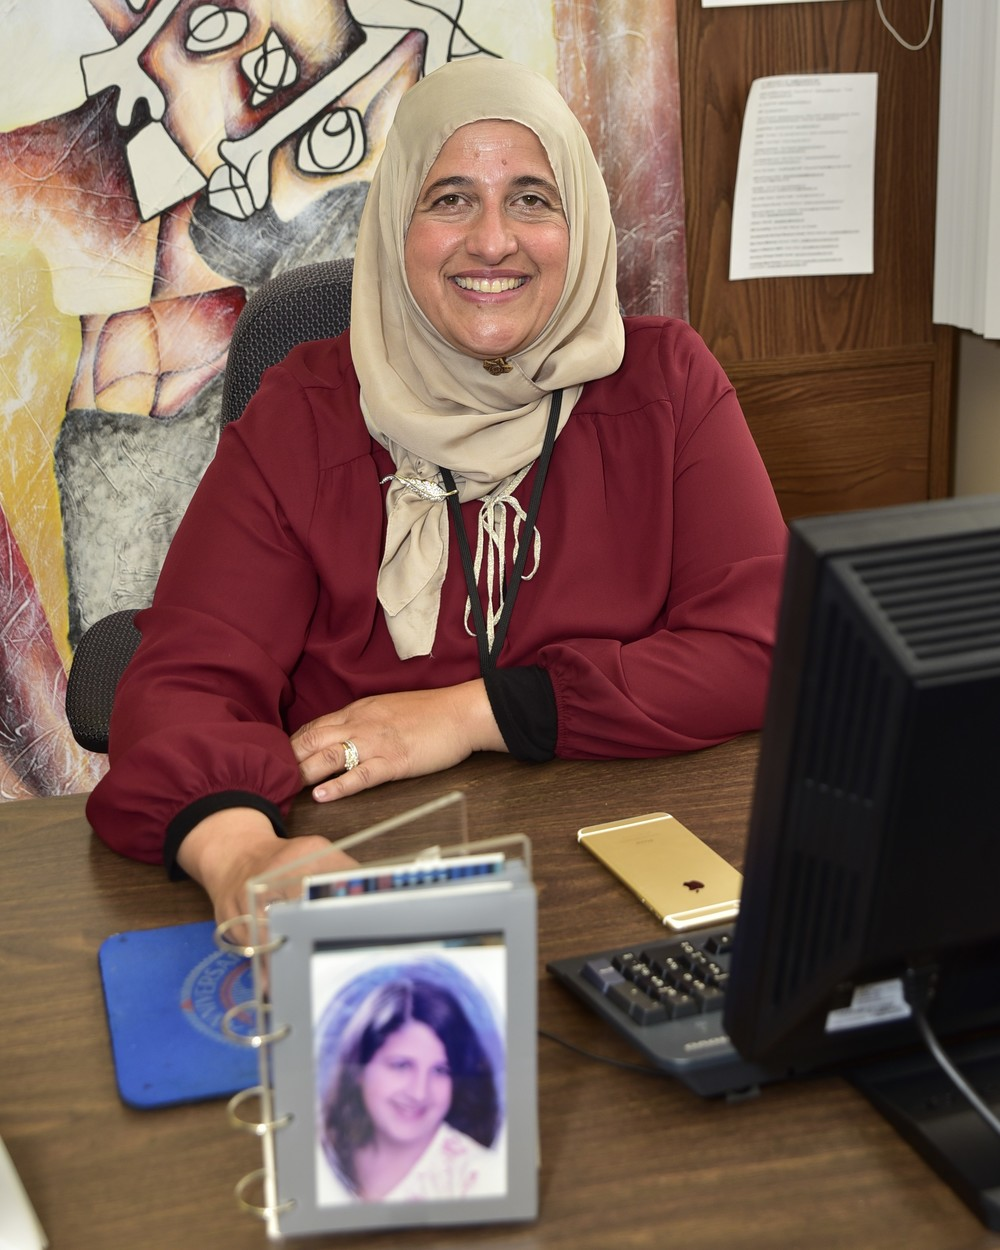 Doha Shahin (English, Arabic) Doha joined us in 2006 and works with our Language and Interpreter Services division. Originally from Egypt, Doha moved to London, ON with her husband and family in 1990, graduated from the University of Western Ontario with a degree in Administrative and Commercial Studies and became a Canadian citizen in 1994. Doha enjoys gardening, spending time with her grandchildren and travelling in her spare time.